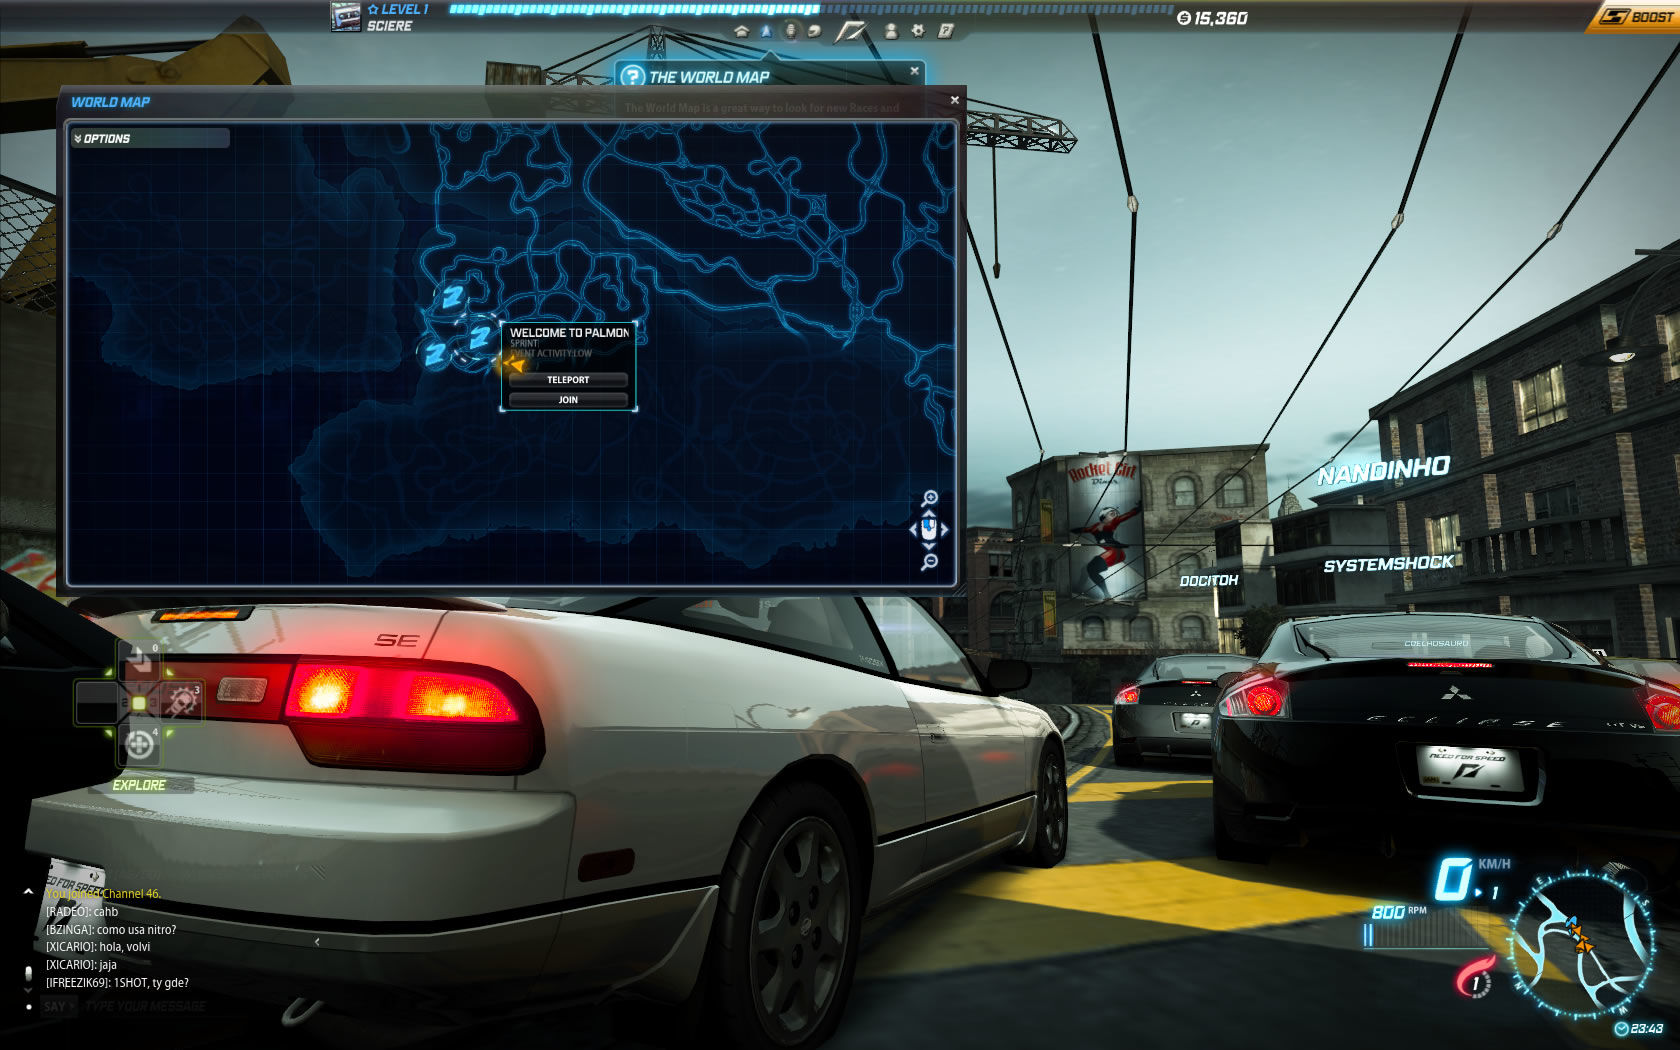 Need for Speed: World Windows Browse the world map for events and teleport right away